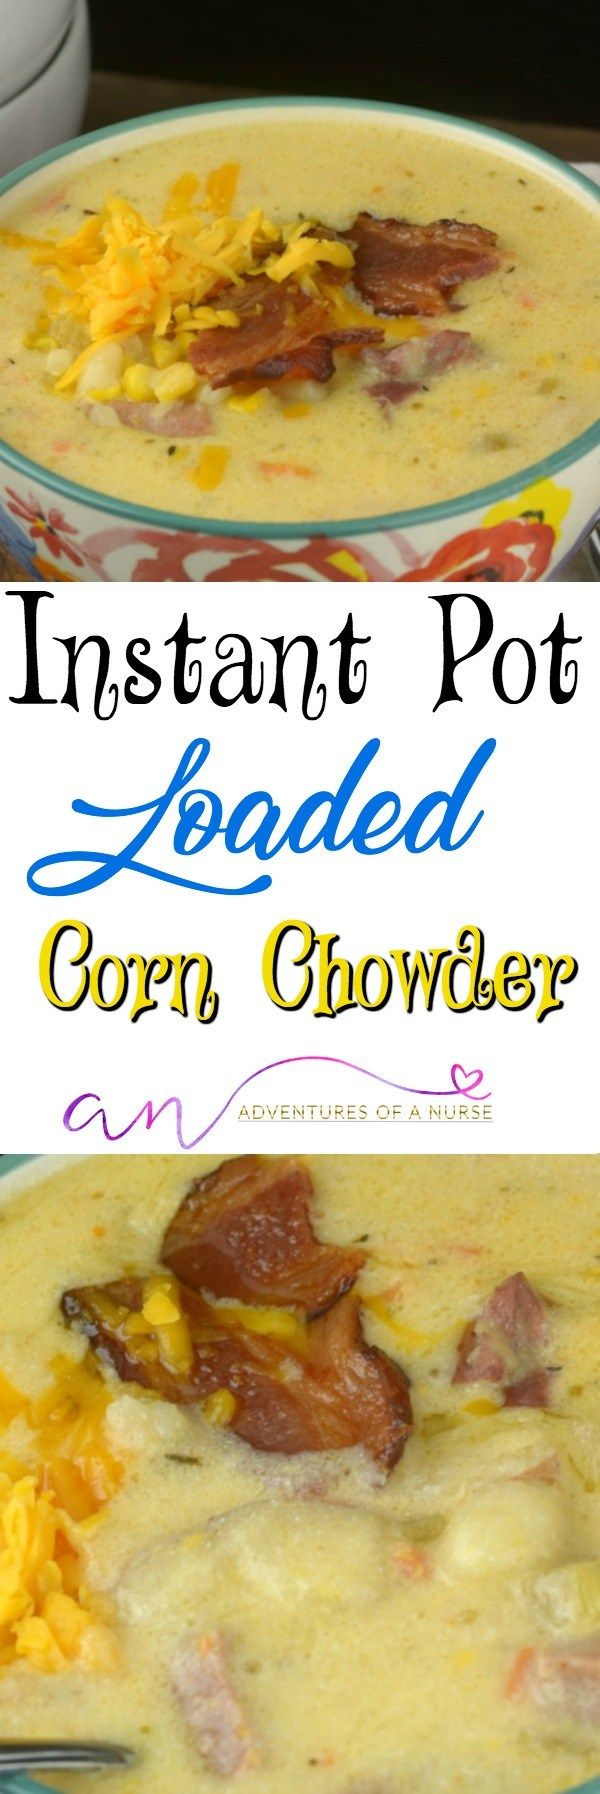 The Ultimate Instant Pot Loaded Corn Chowder - Adventures of a Nurse